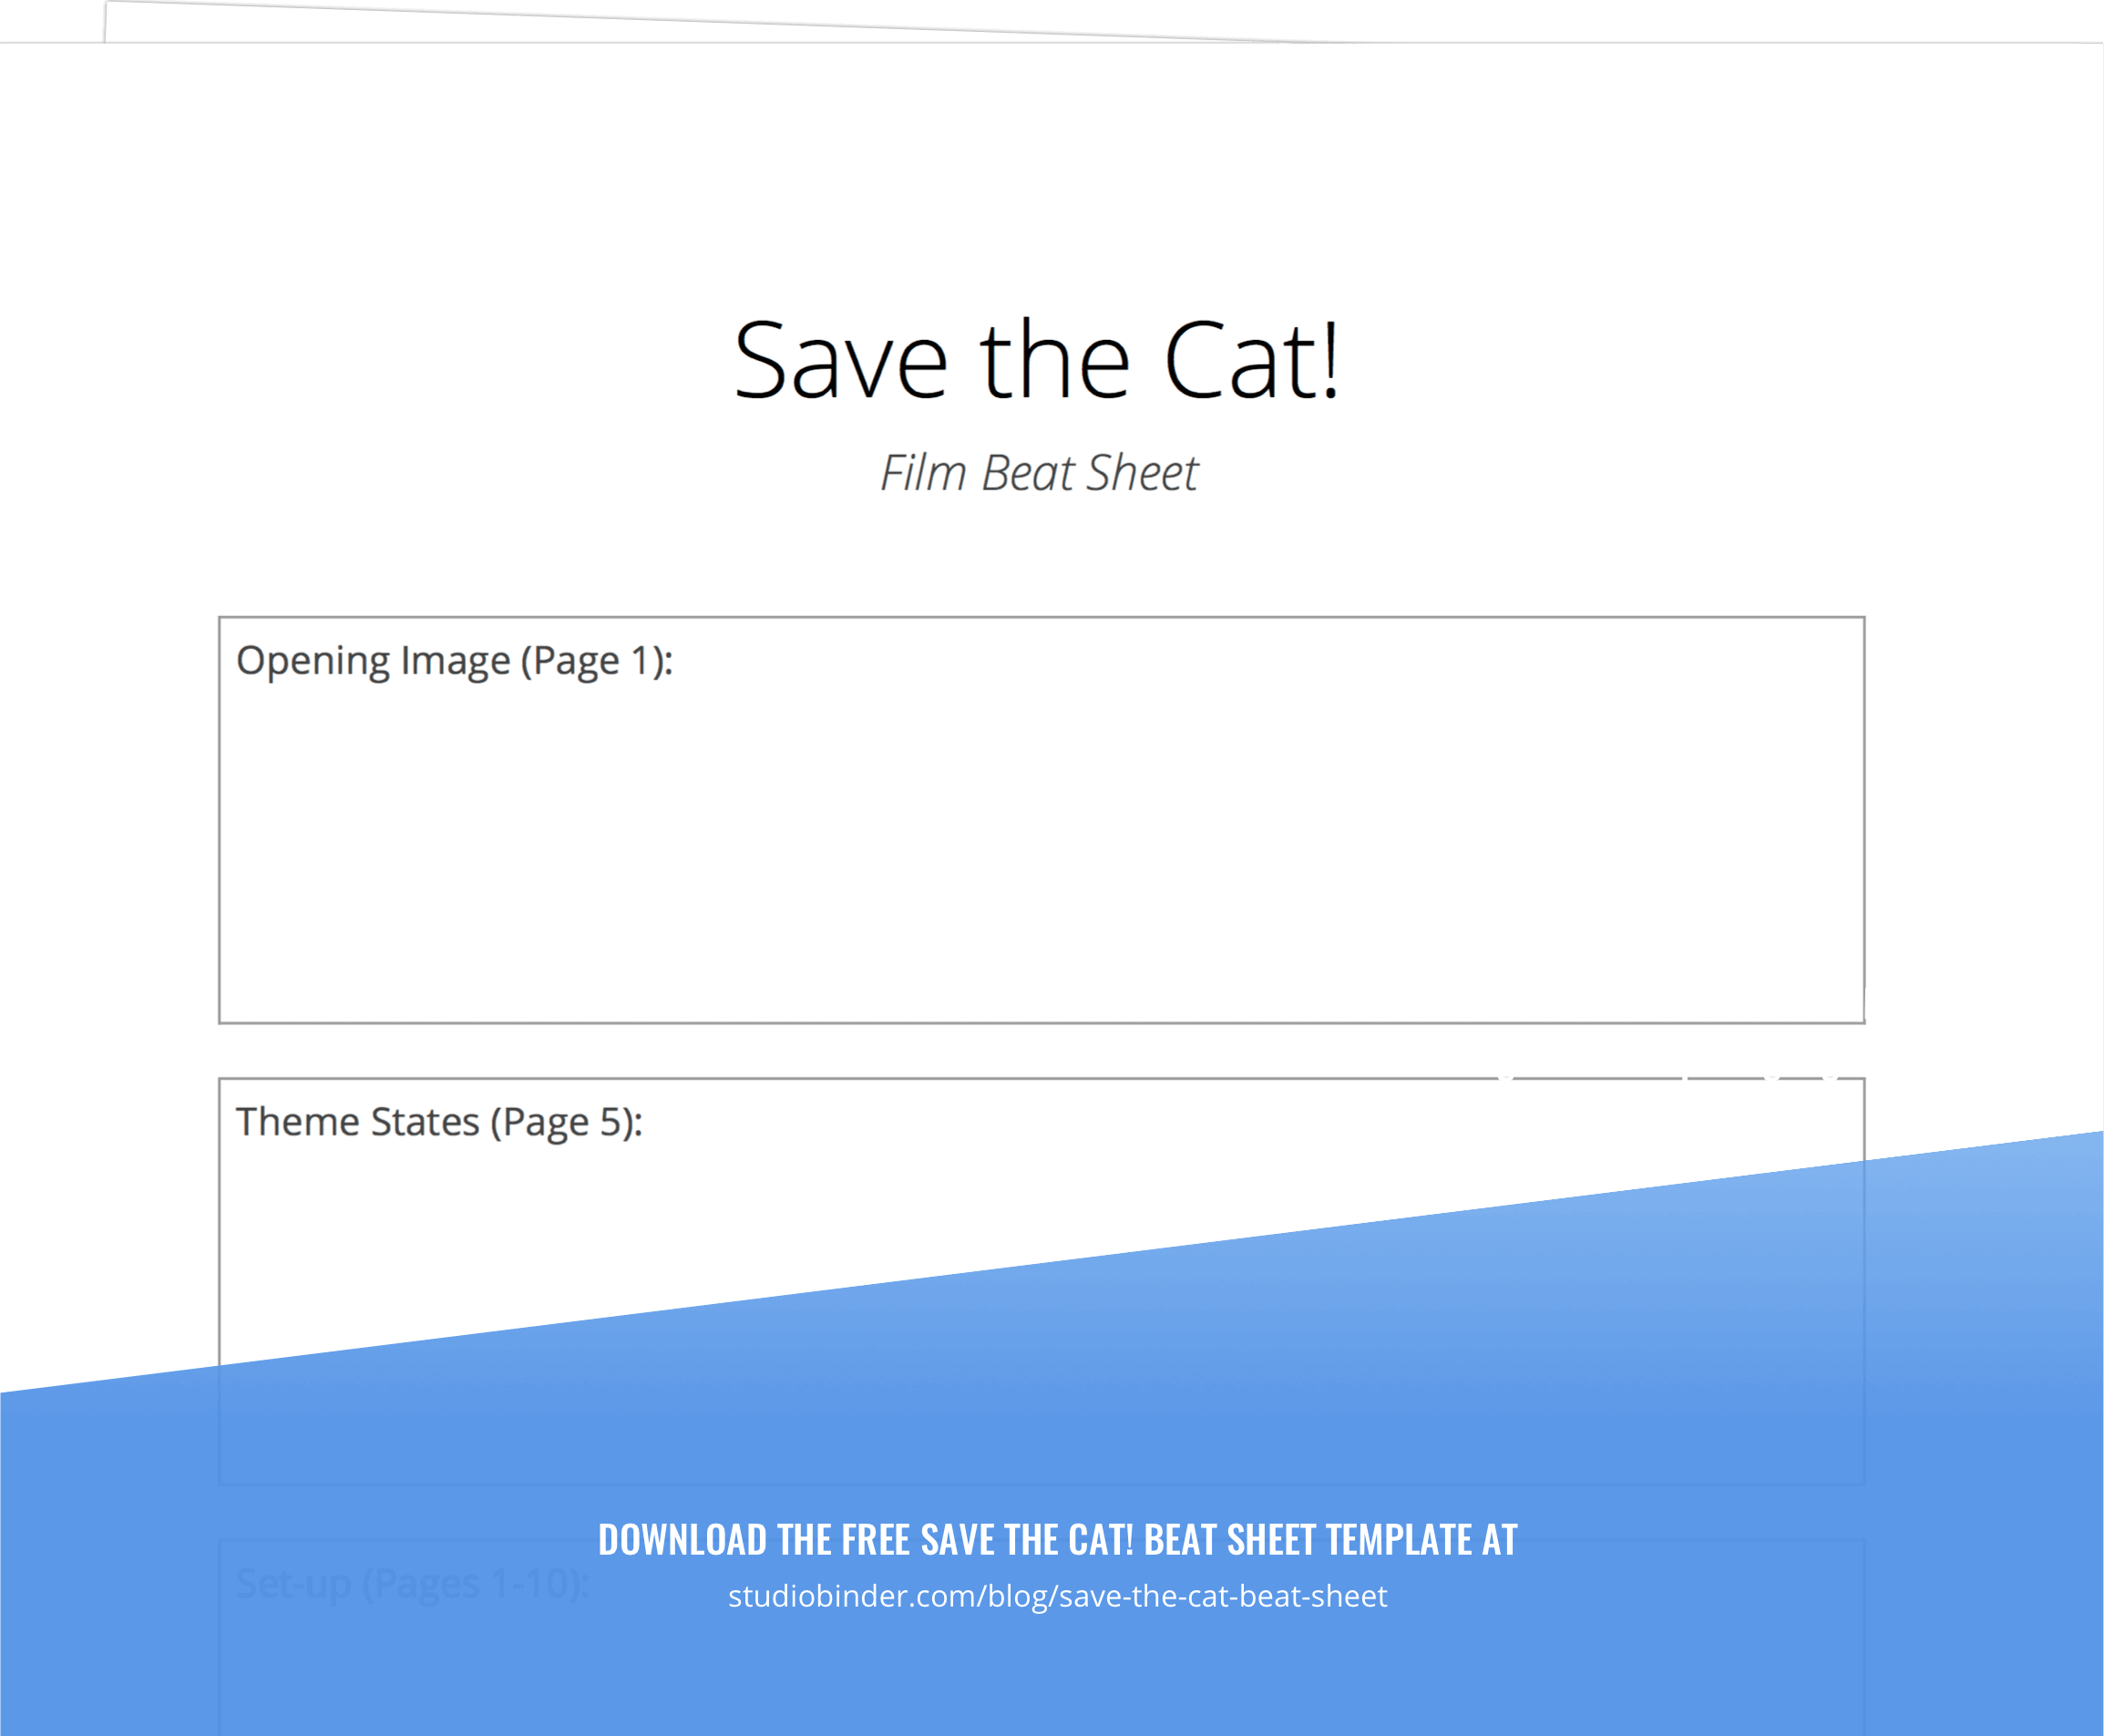 Save the Cat Beat Sheet Explained [with FREE Template]